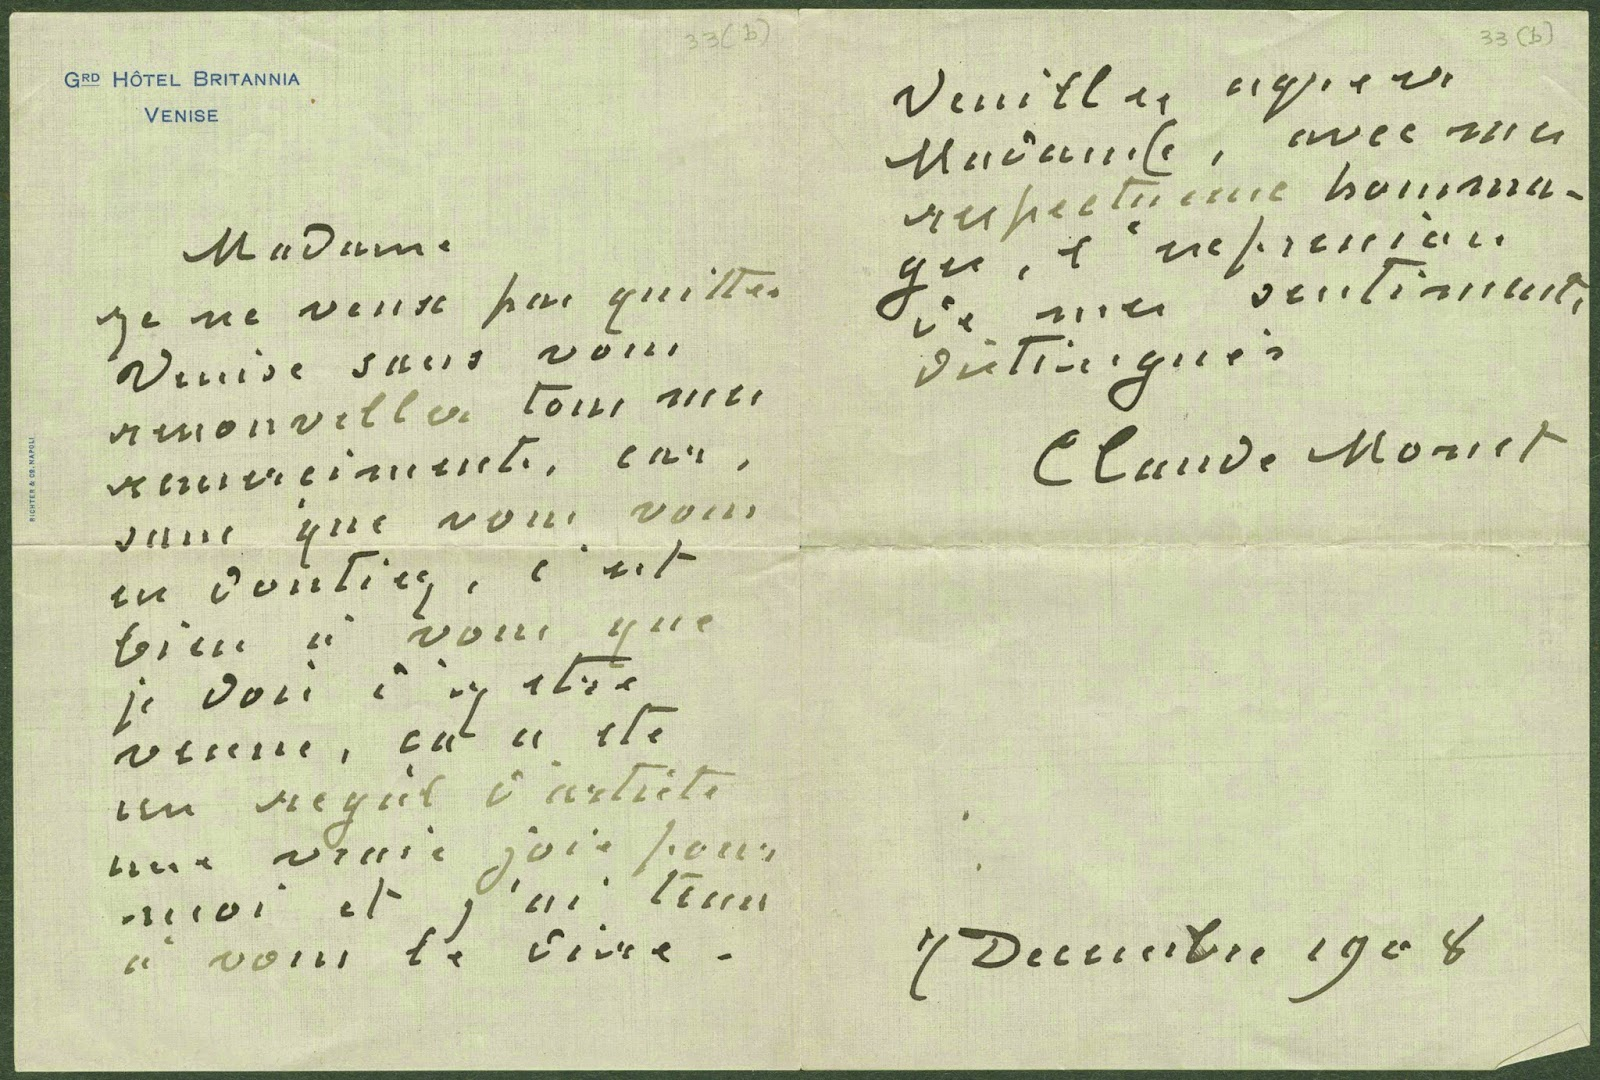 A handwritten letter from Monet.